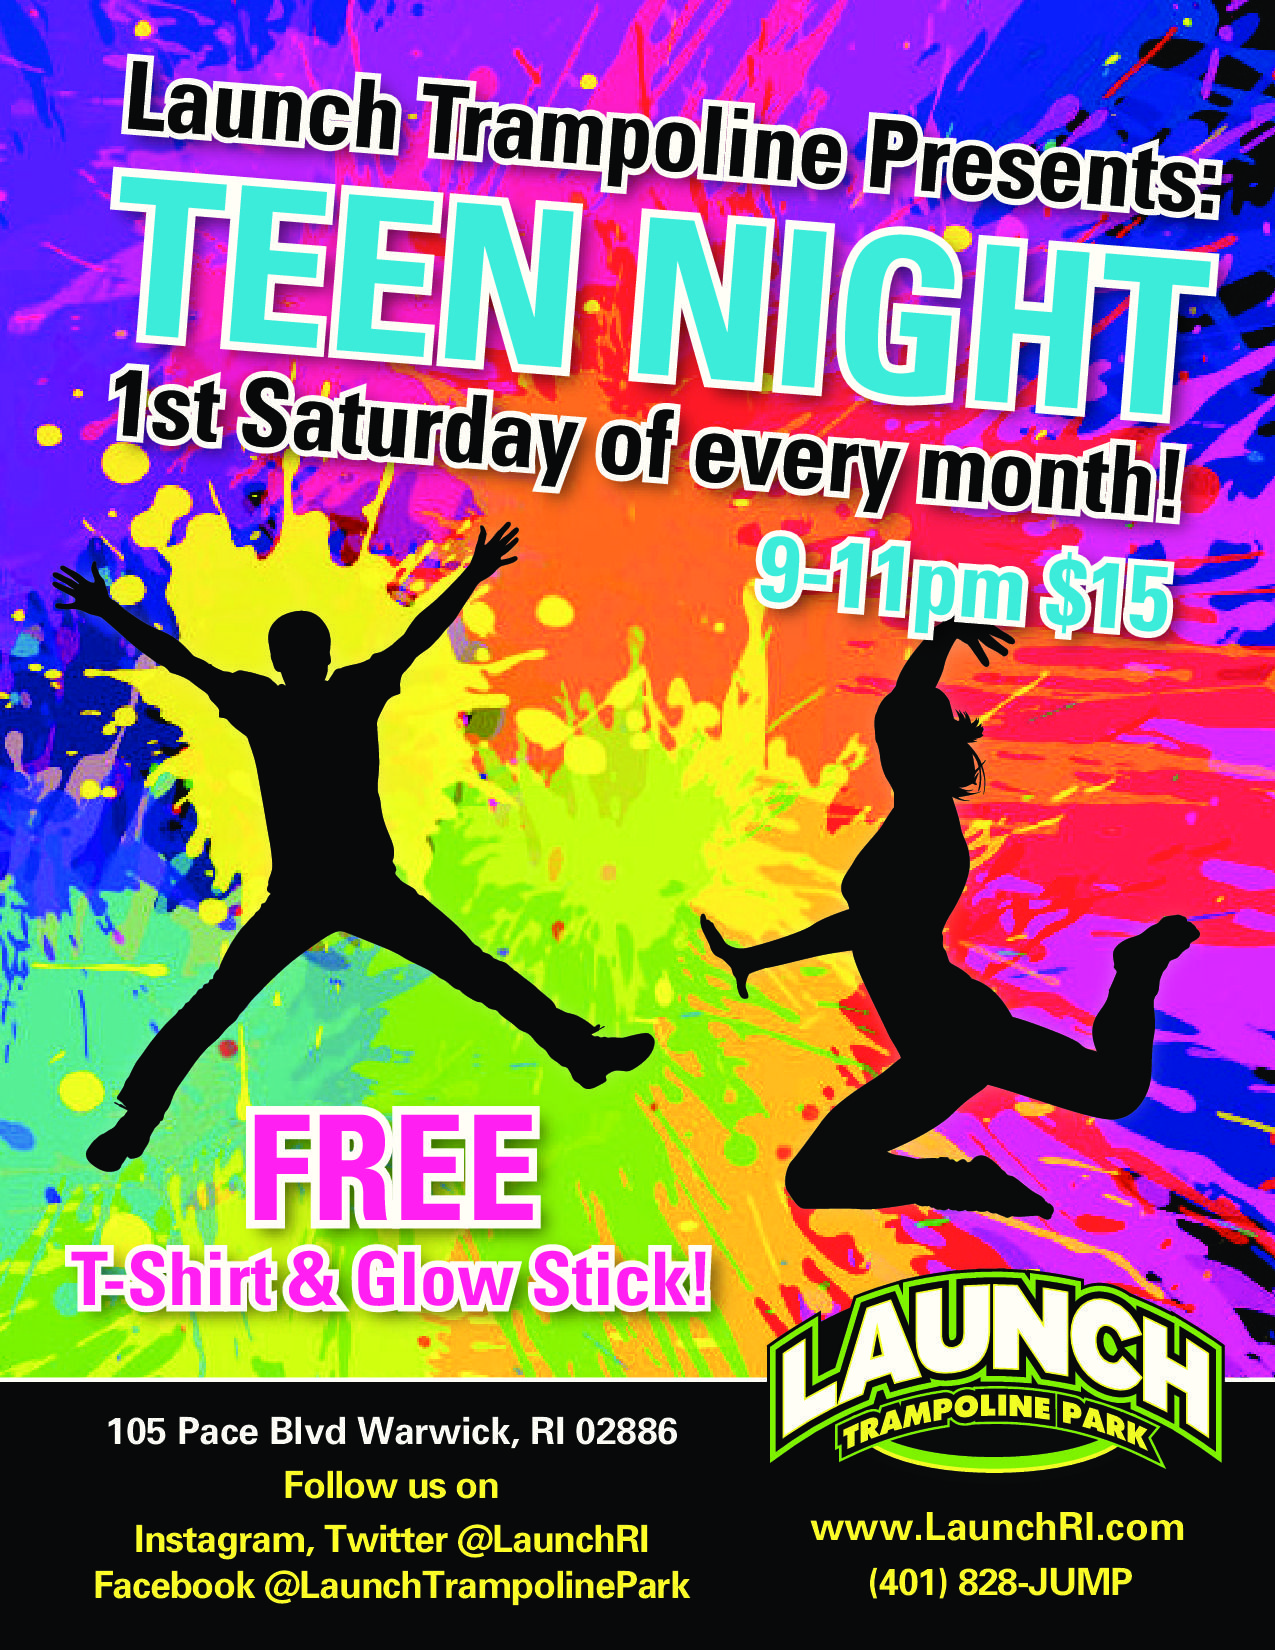 teen night at launch trampoline park warwick ri fun place for kids to party and let loose 2. Black Bedroom Furniture Sets. Home Design Ideas